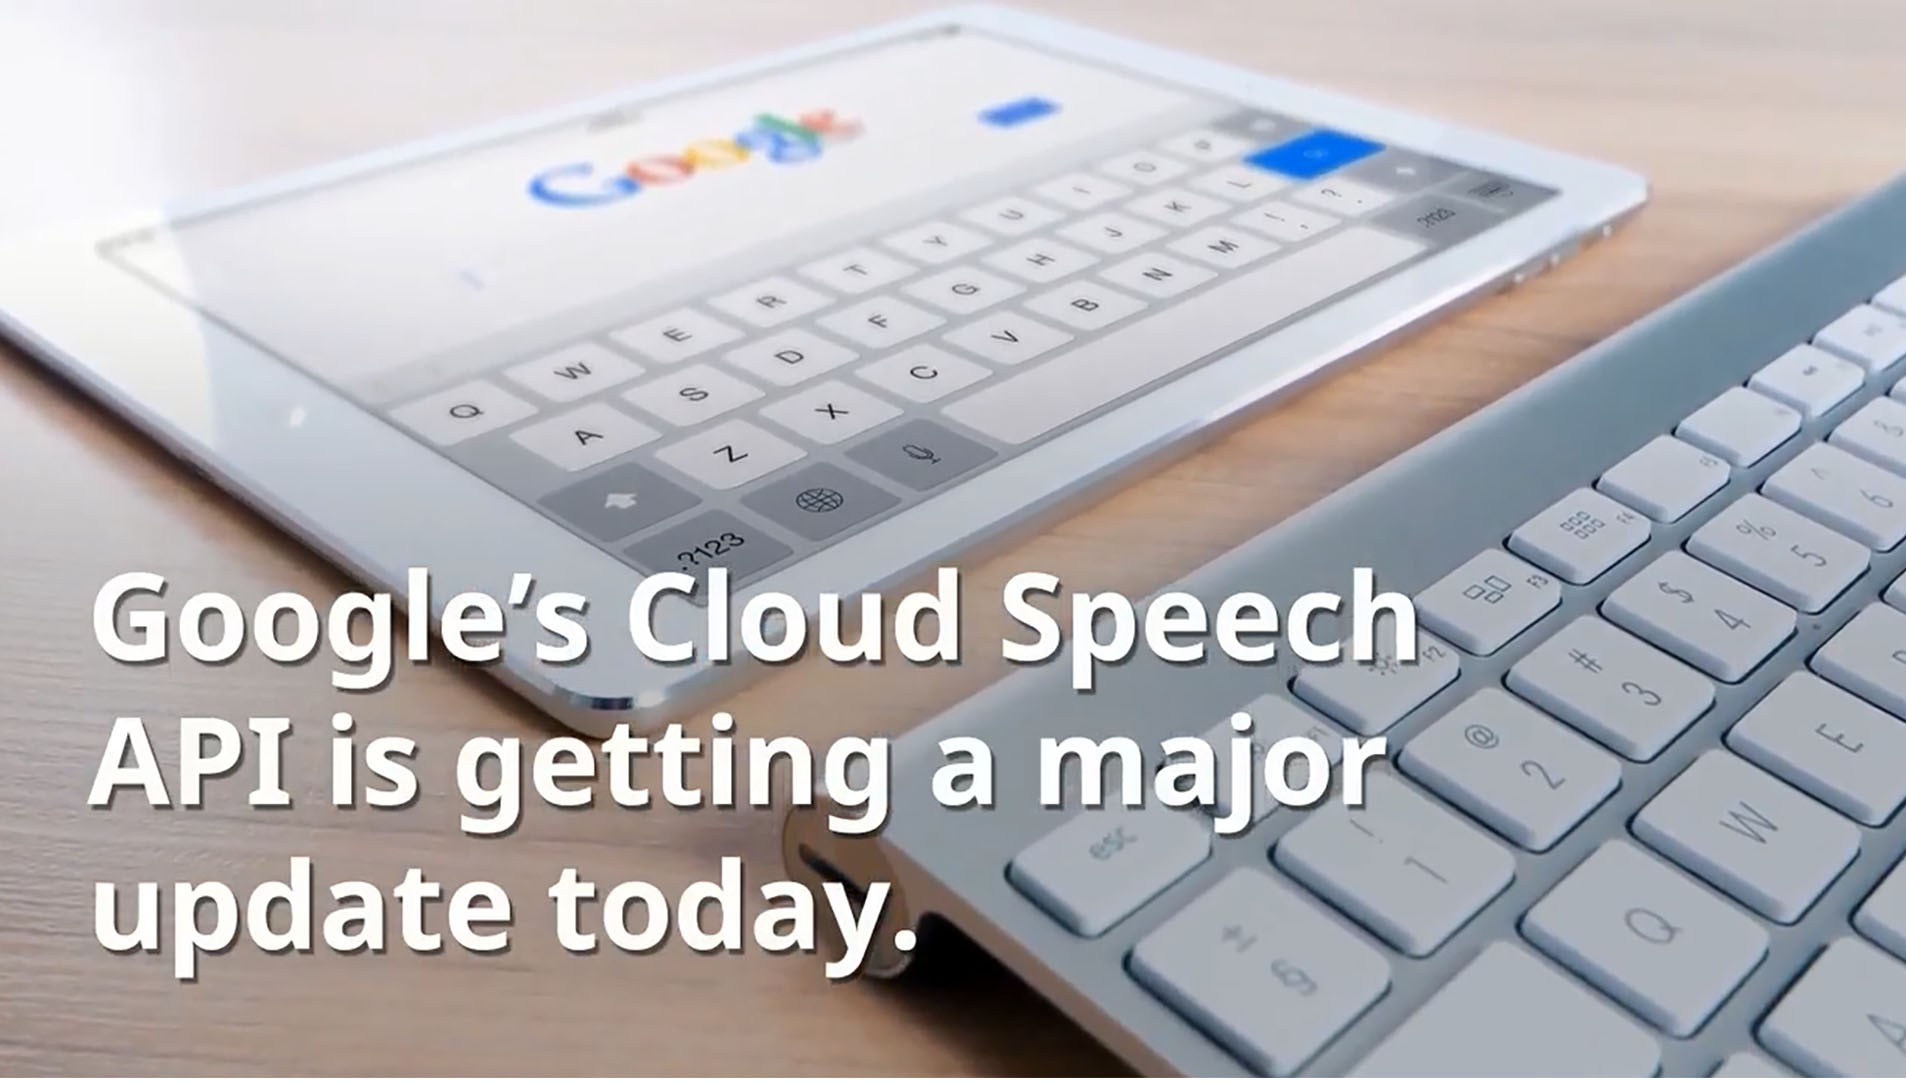 Digital industry news #6 | Google's Cloud Speech Update